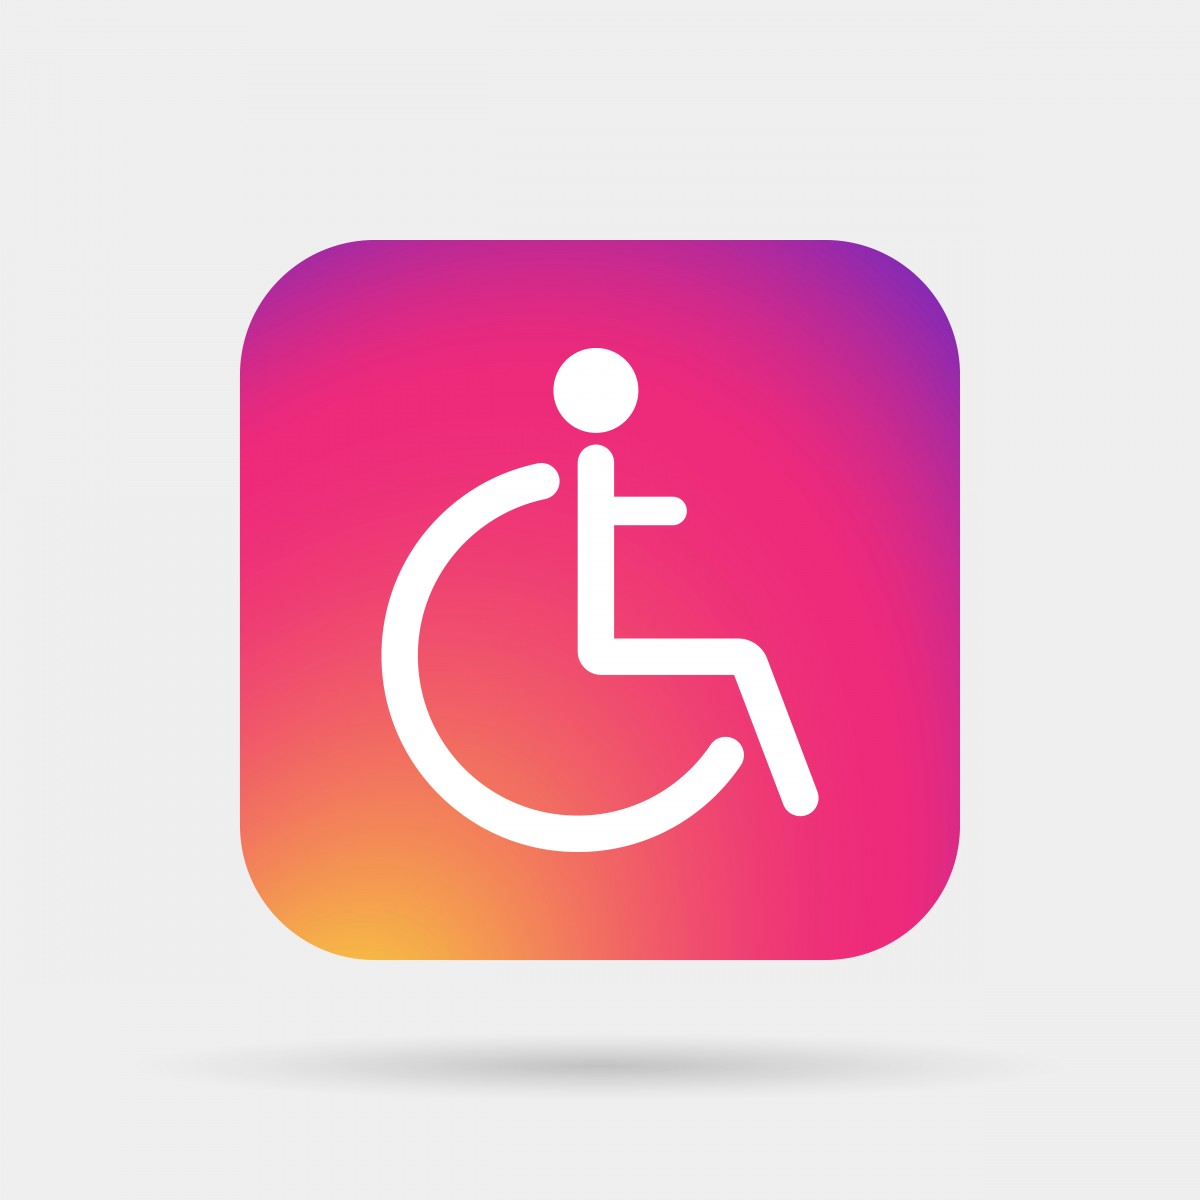 MS and disability